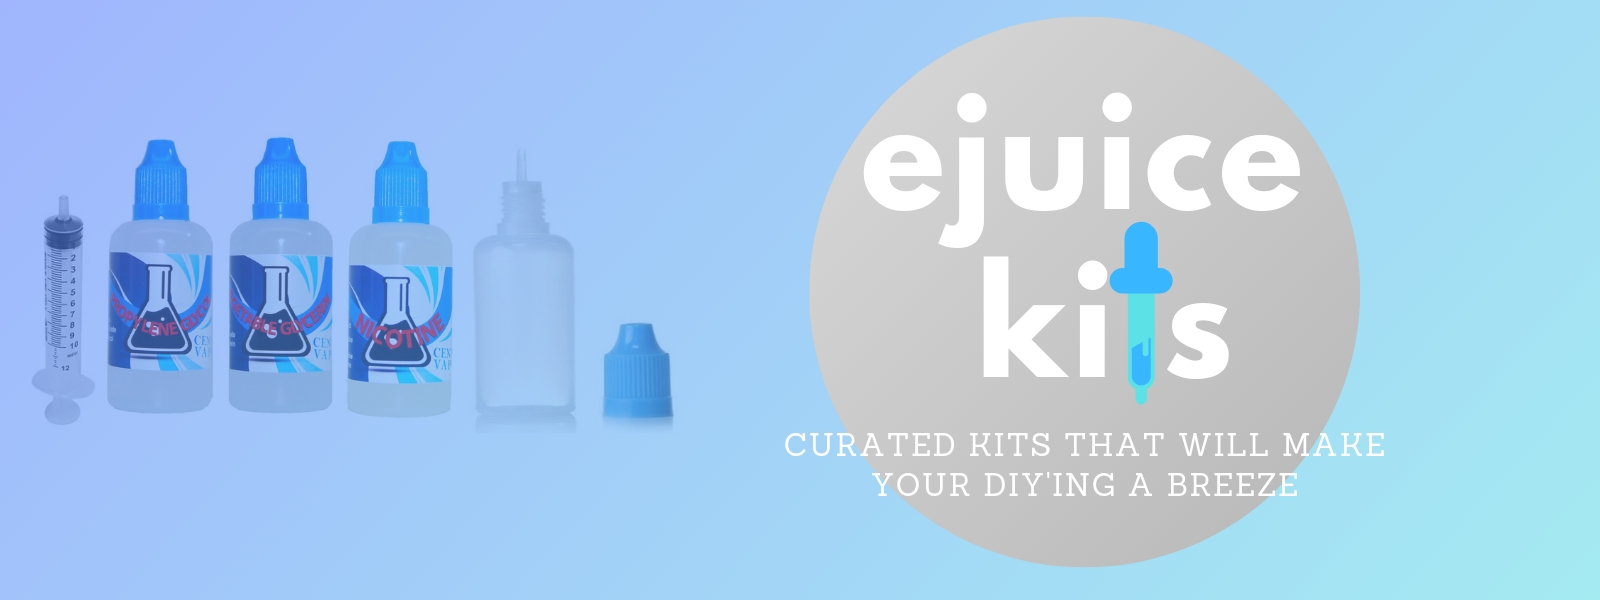 DIY Ejuice Kits